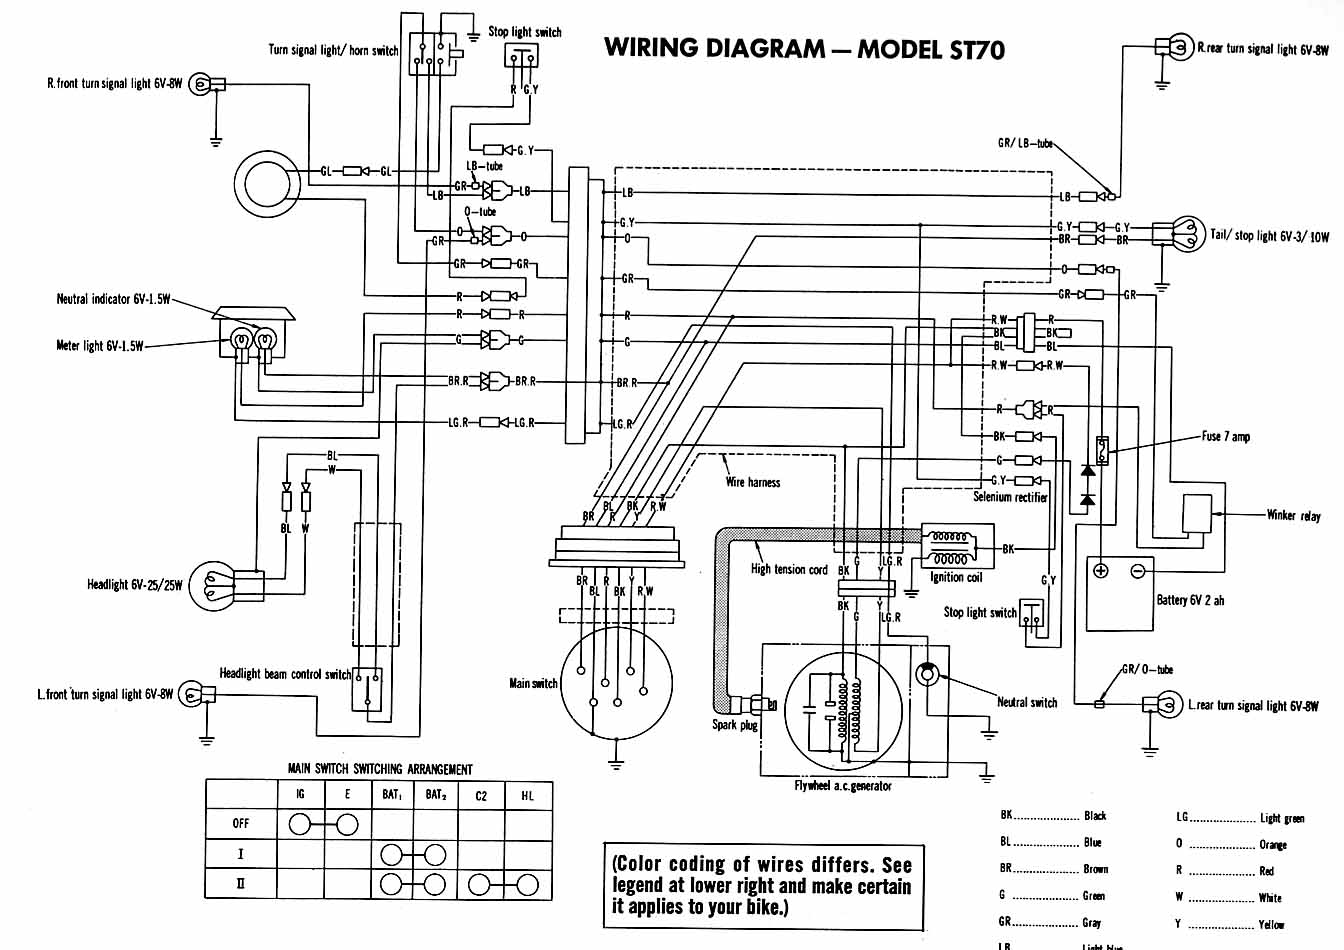 2002 Honda Odyssey Alternator Wire Diagram Trusted Schematics 2003 Infiniti I35 Fuse Box